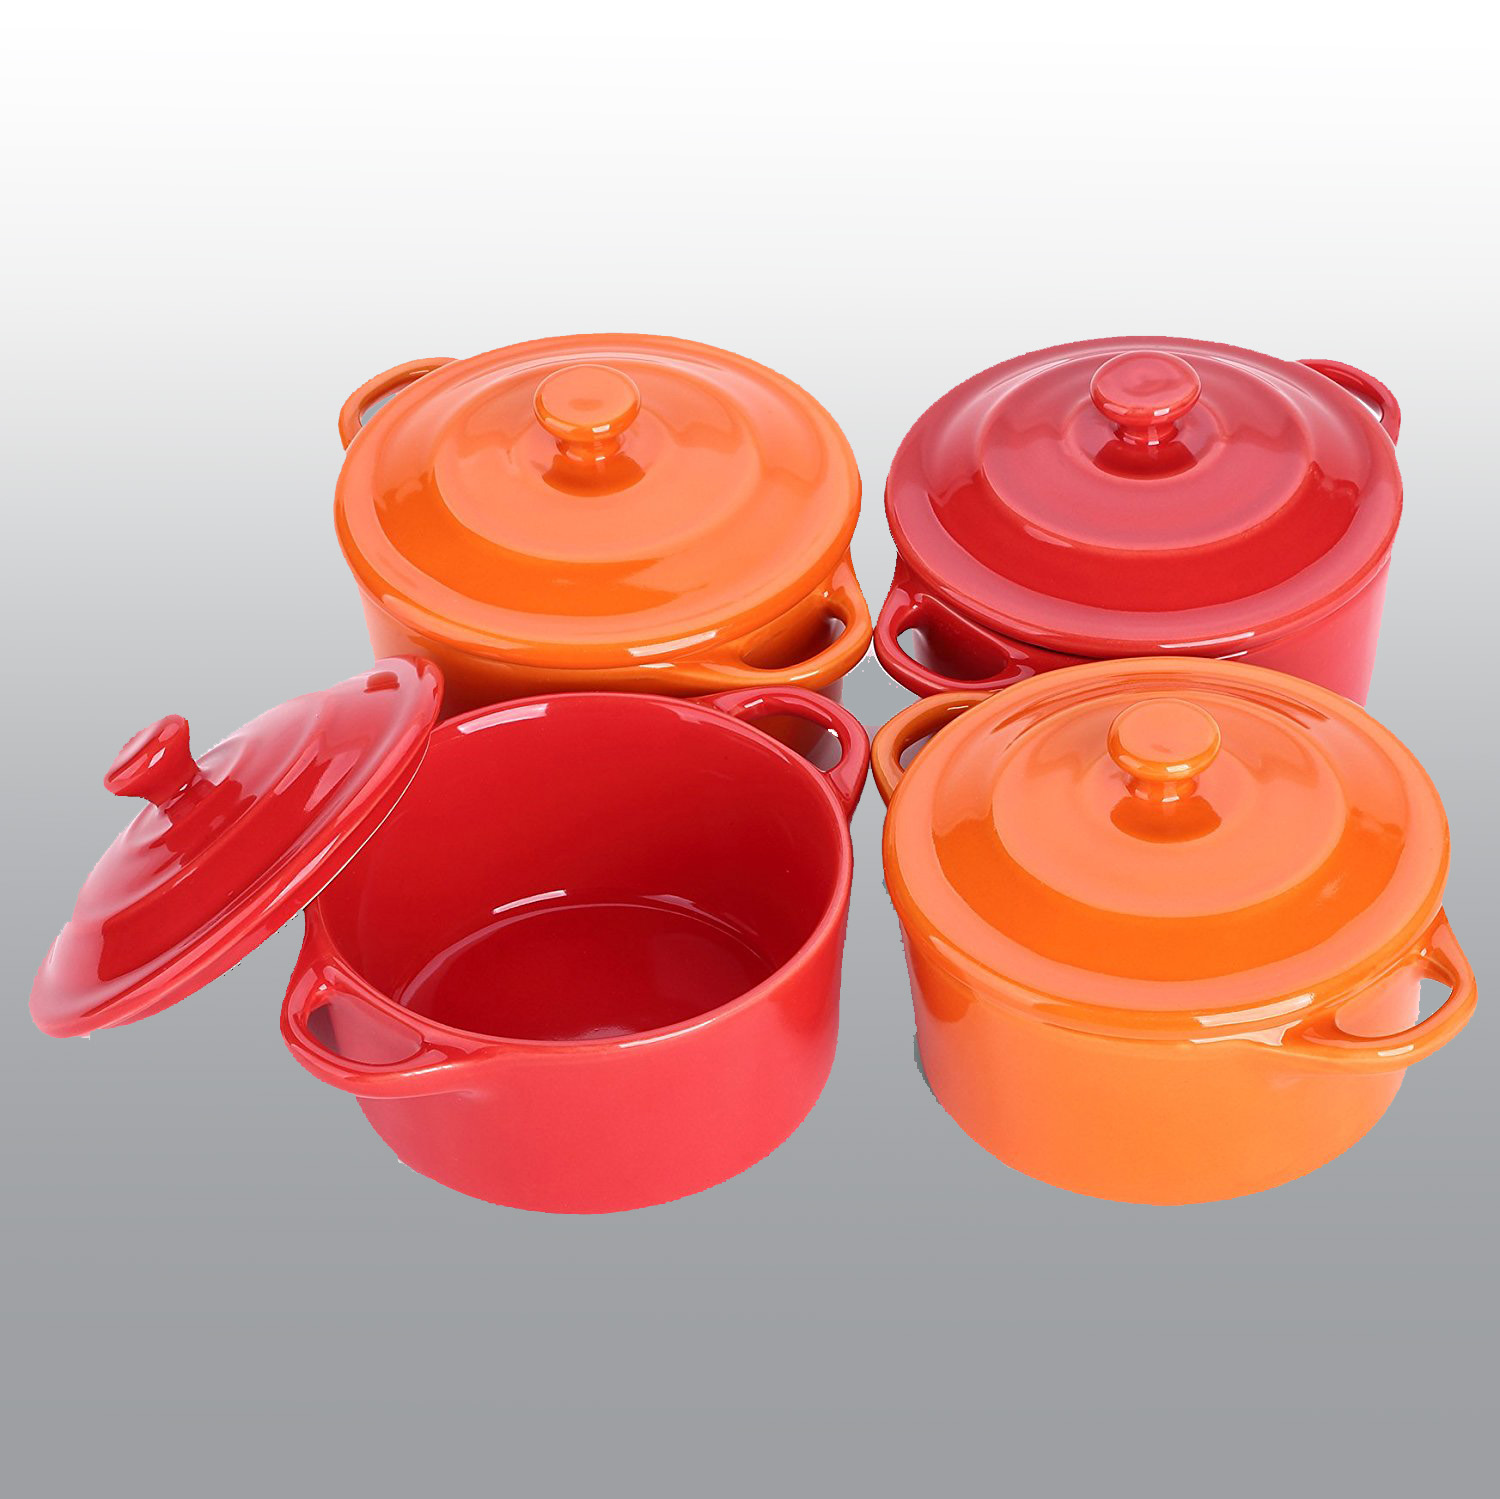 Colorful Stoneware Mini Casserole Pots With Lids - Set of 4,Assorted